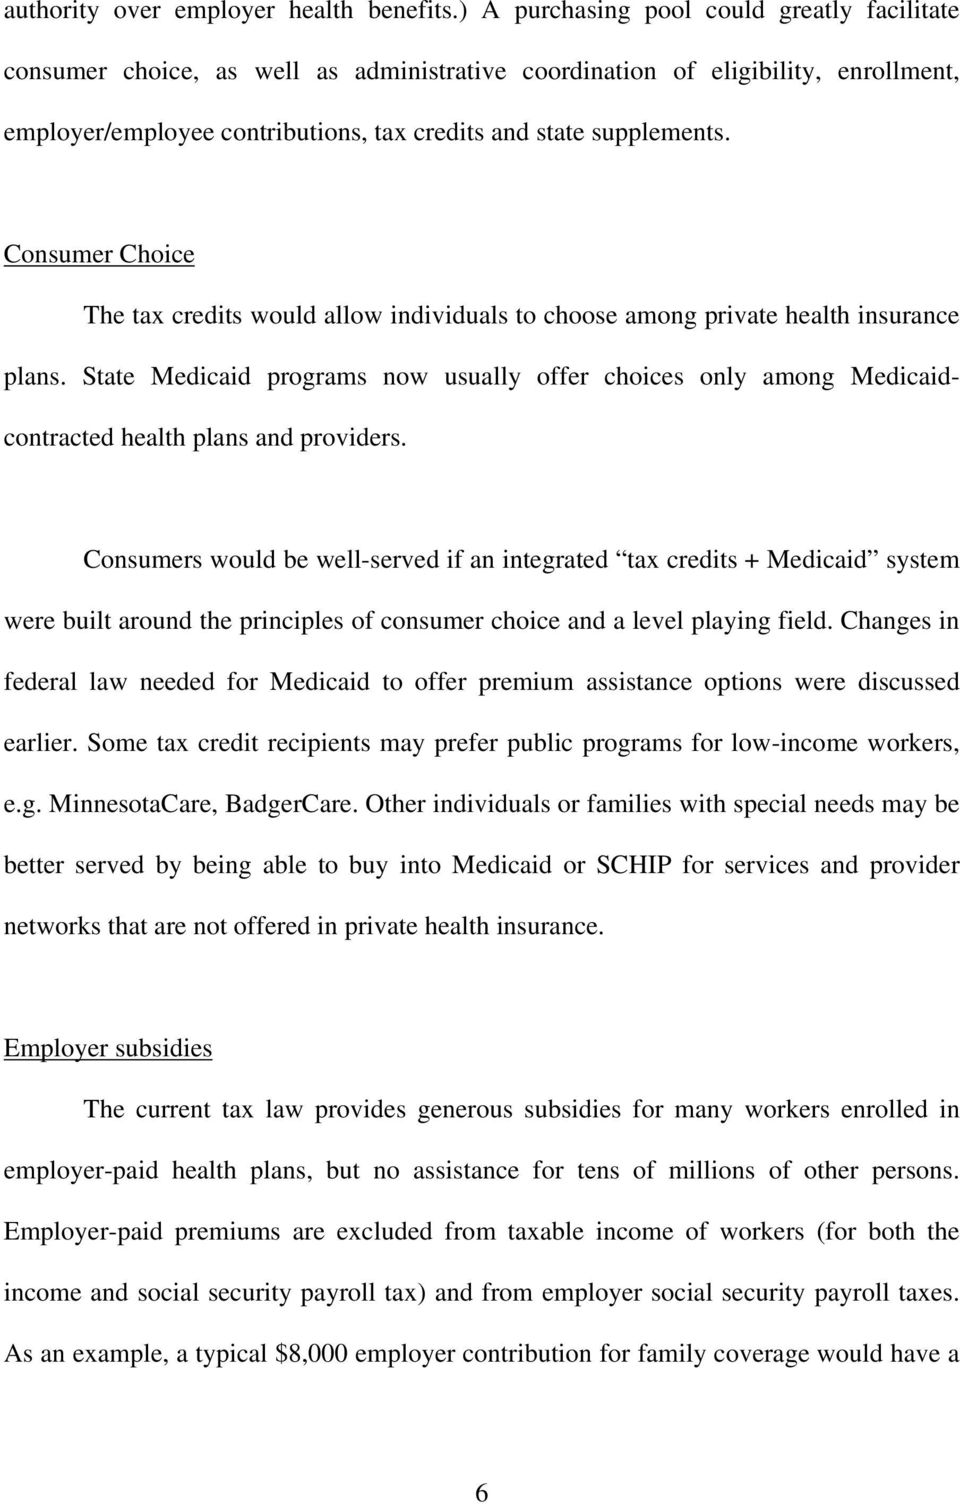 Consumer Choice The tax credits would allow individuals to choose among private health insurance plans.